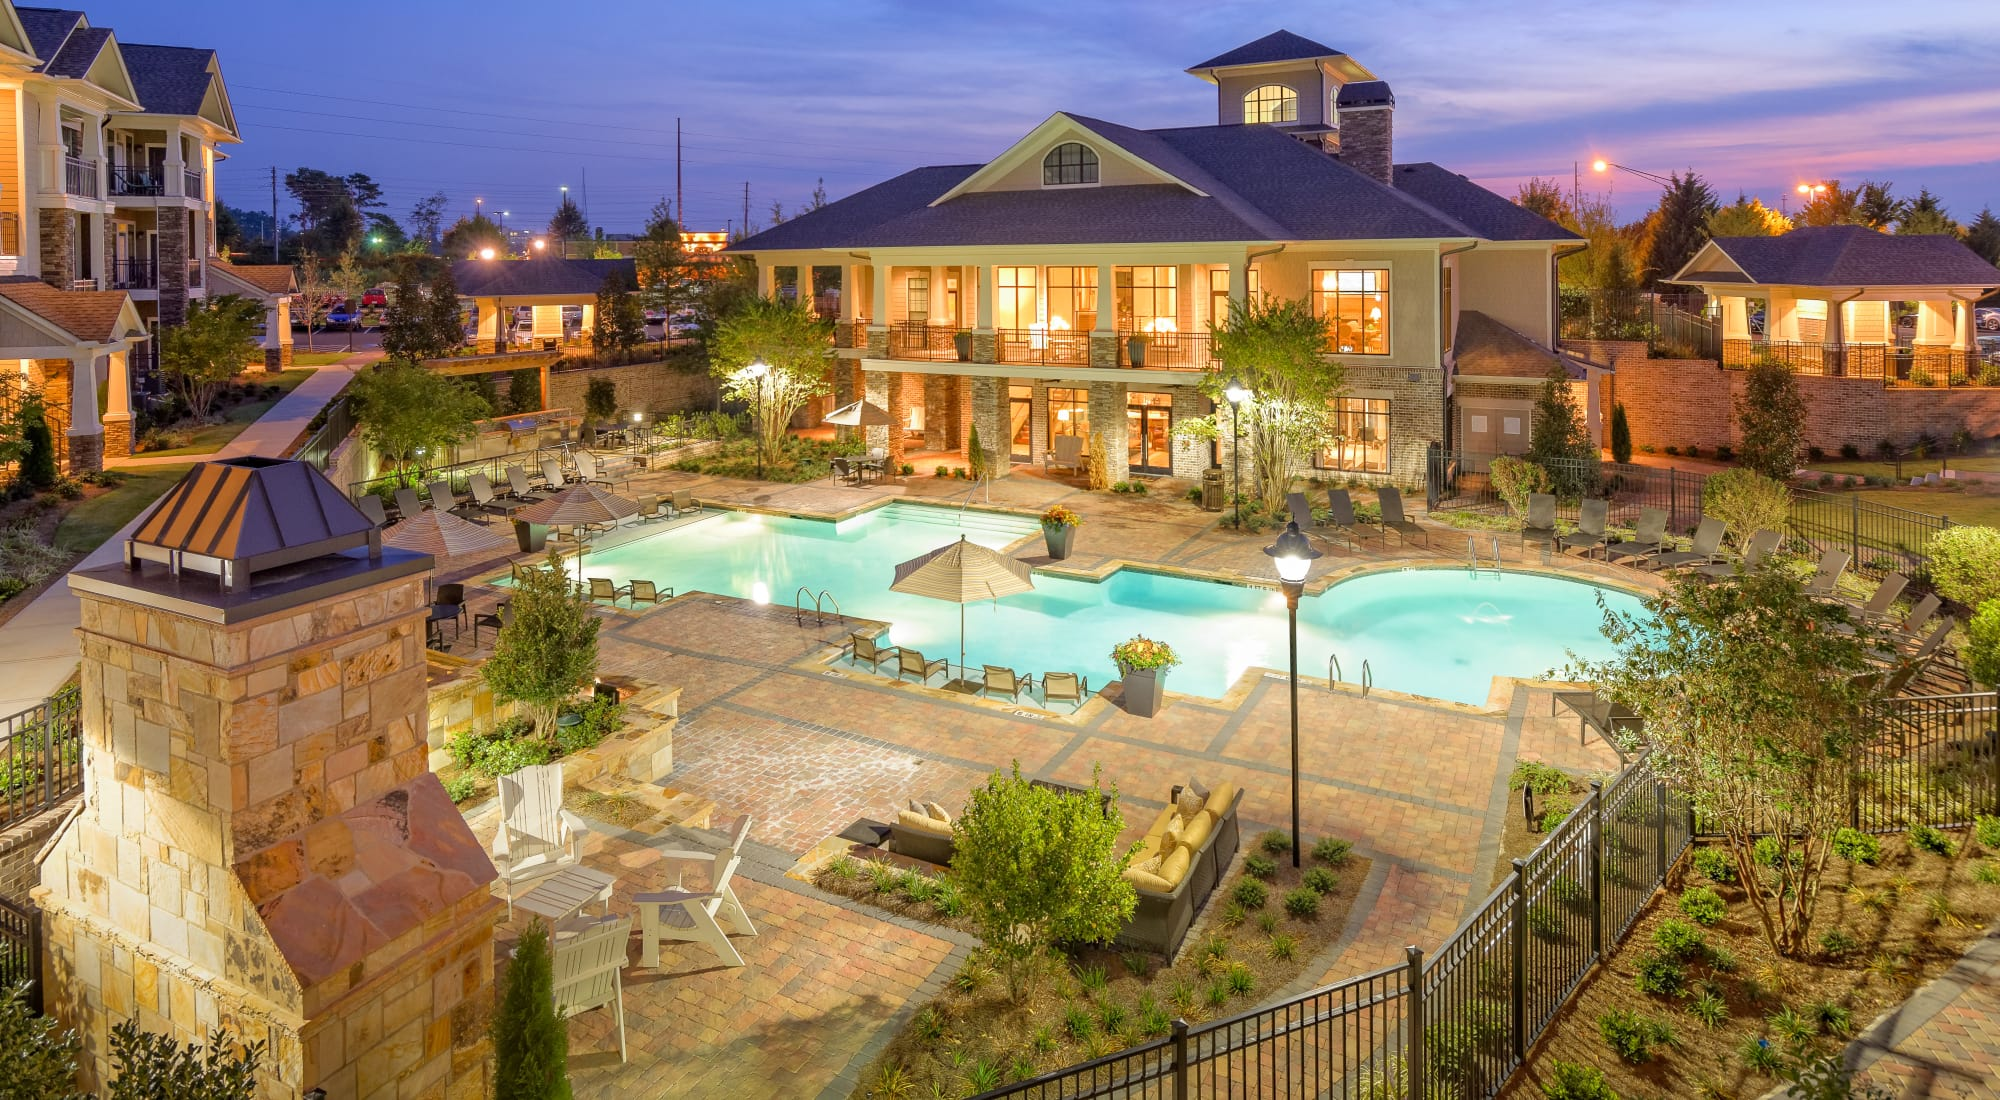 Apartments at The Heights at Old Peachtree in Suwanee, Georgia